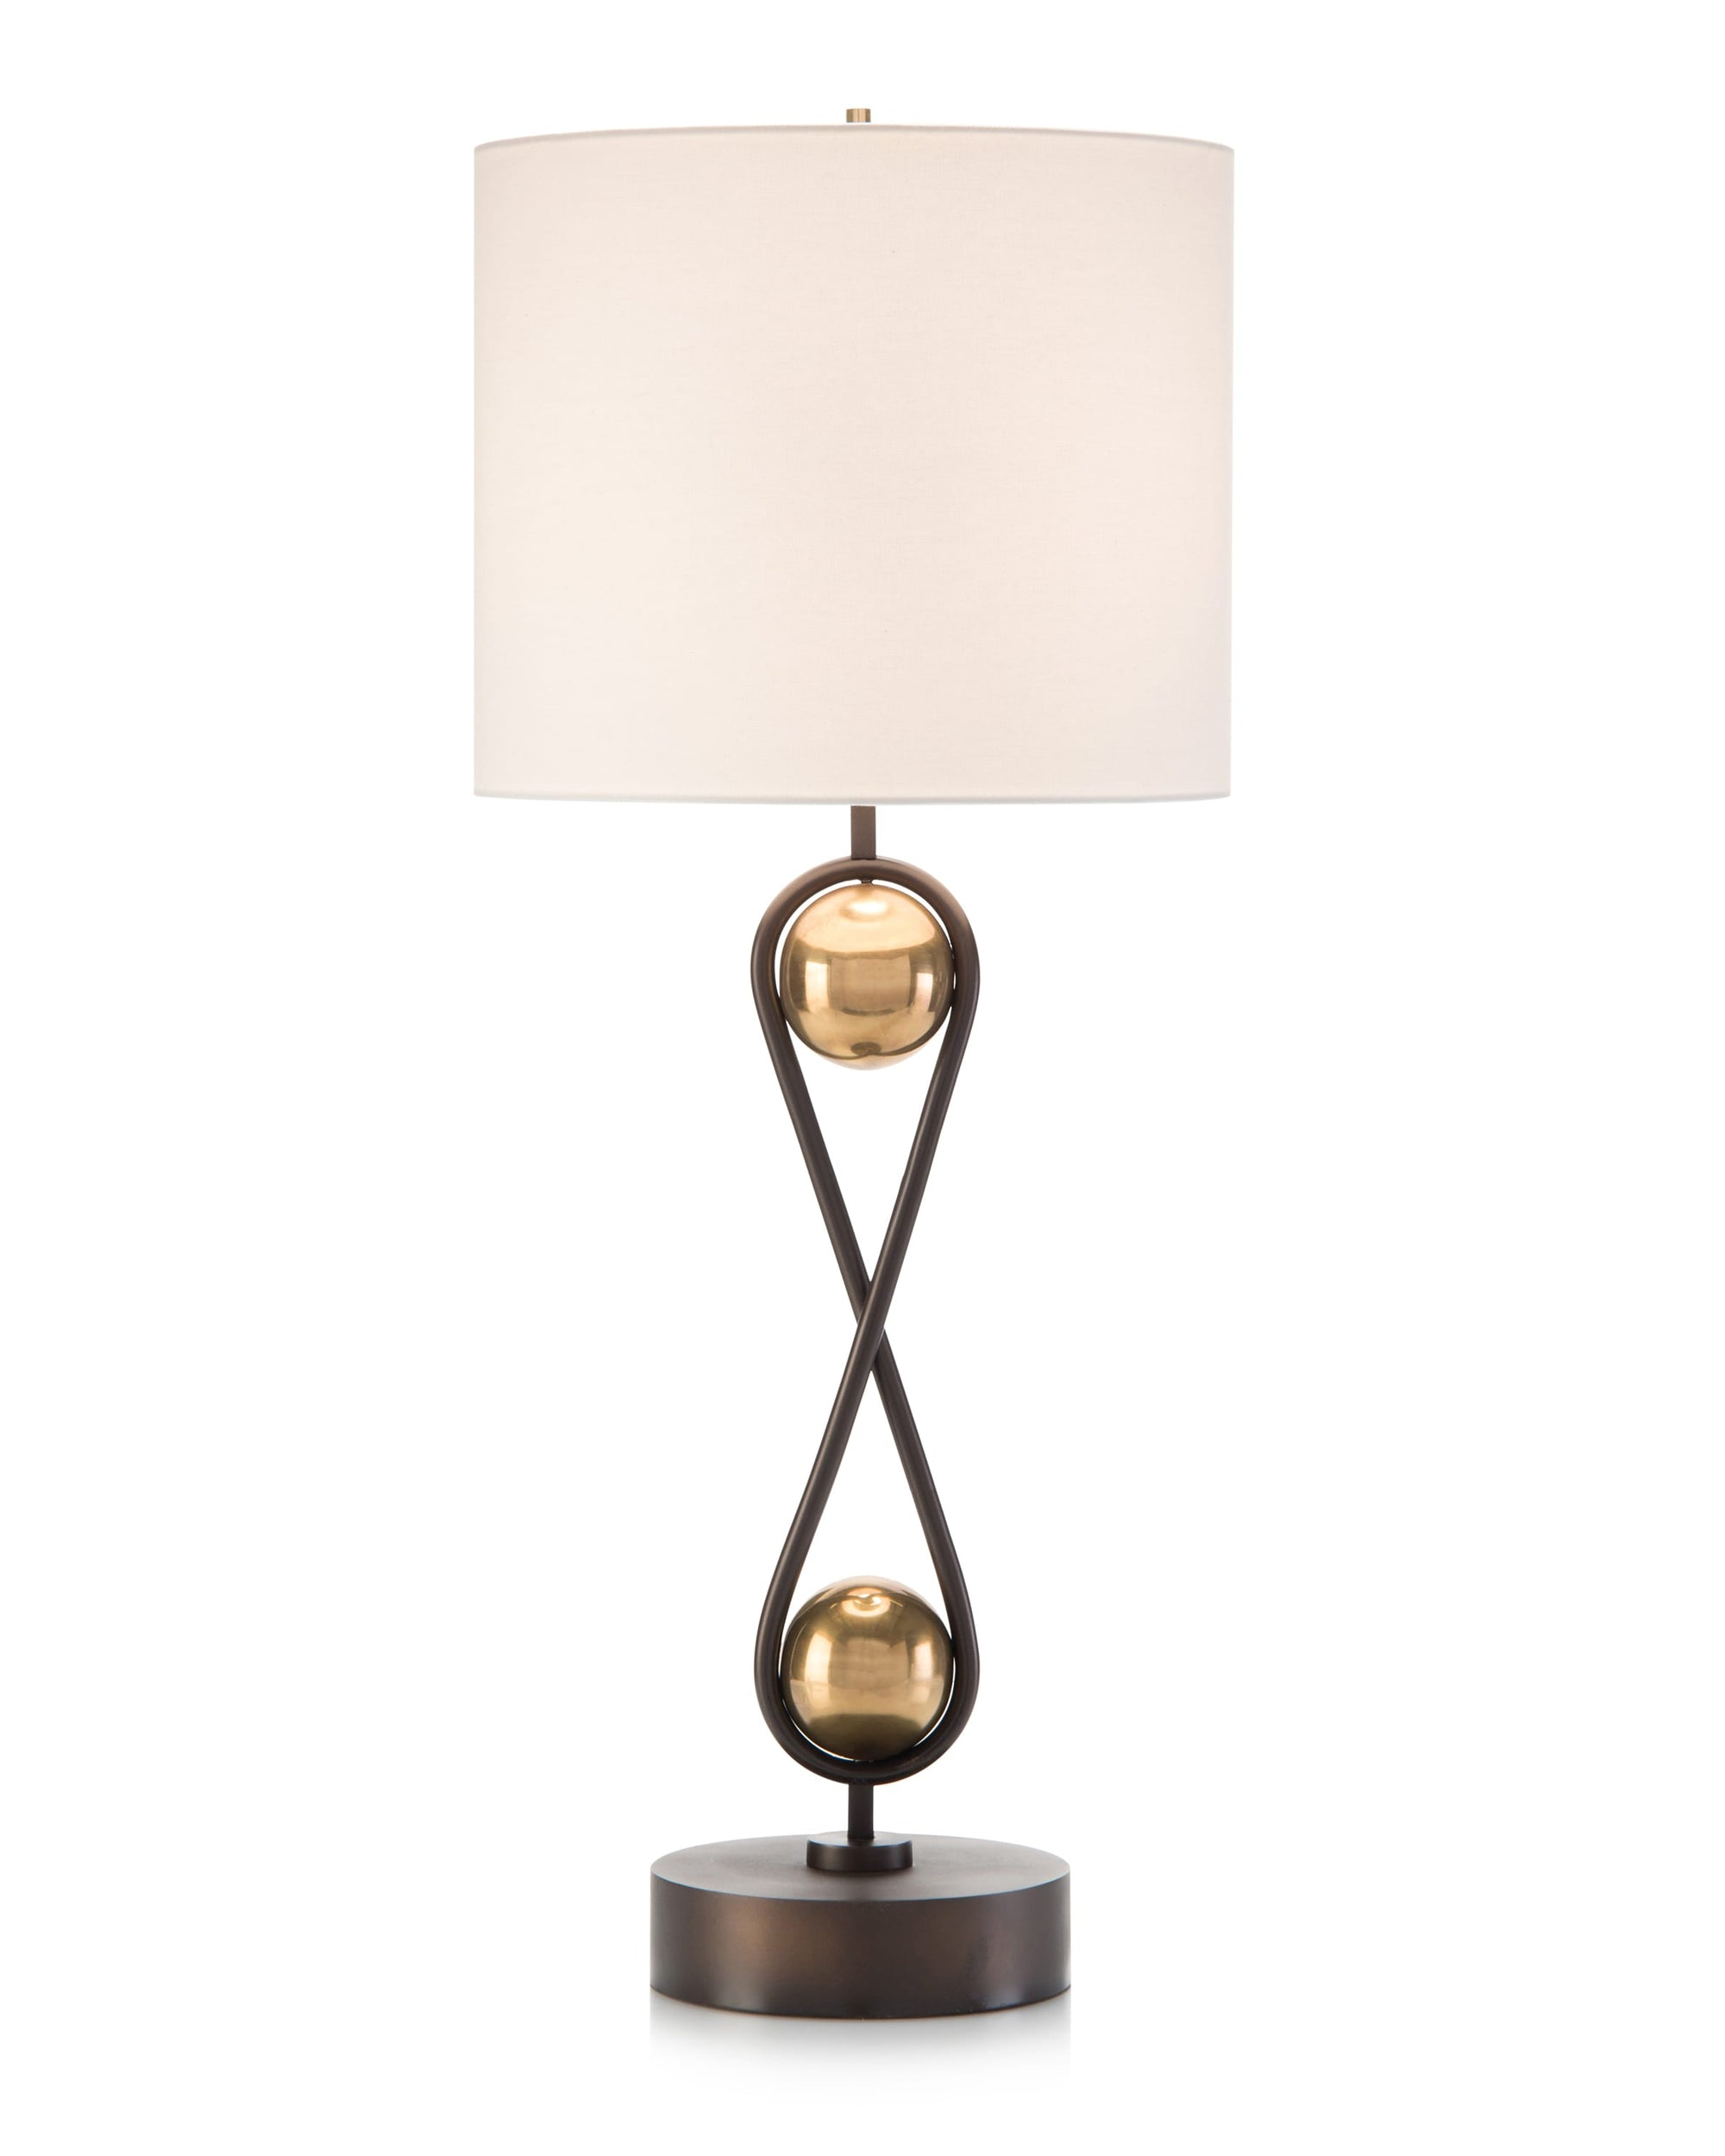 Brass spheres suspended in antique bronze loops table lamp from John-Richard